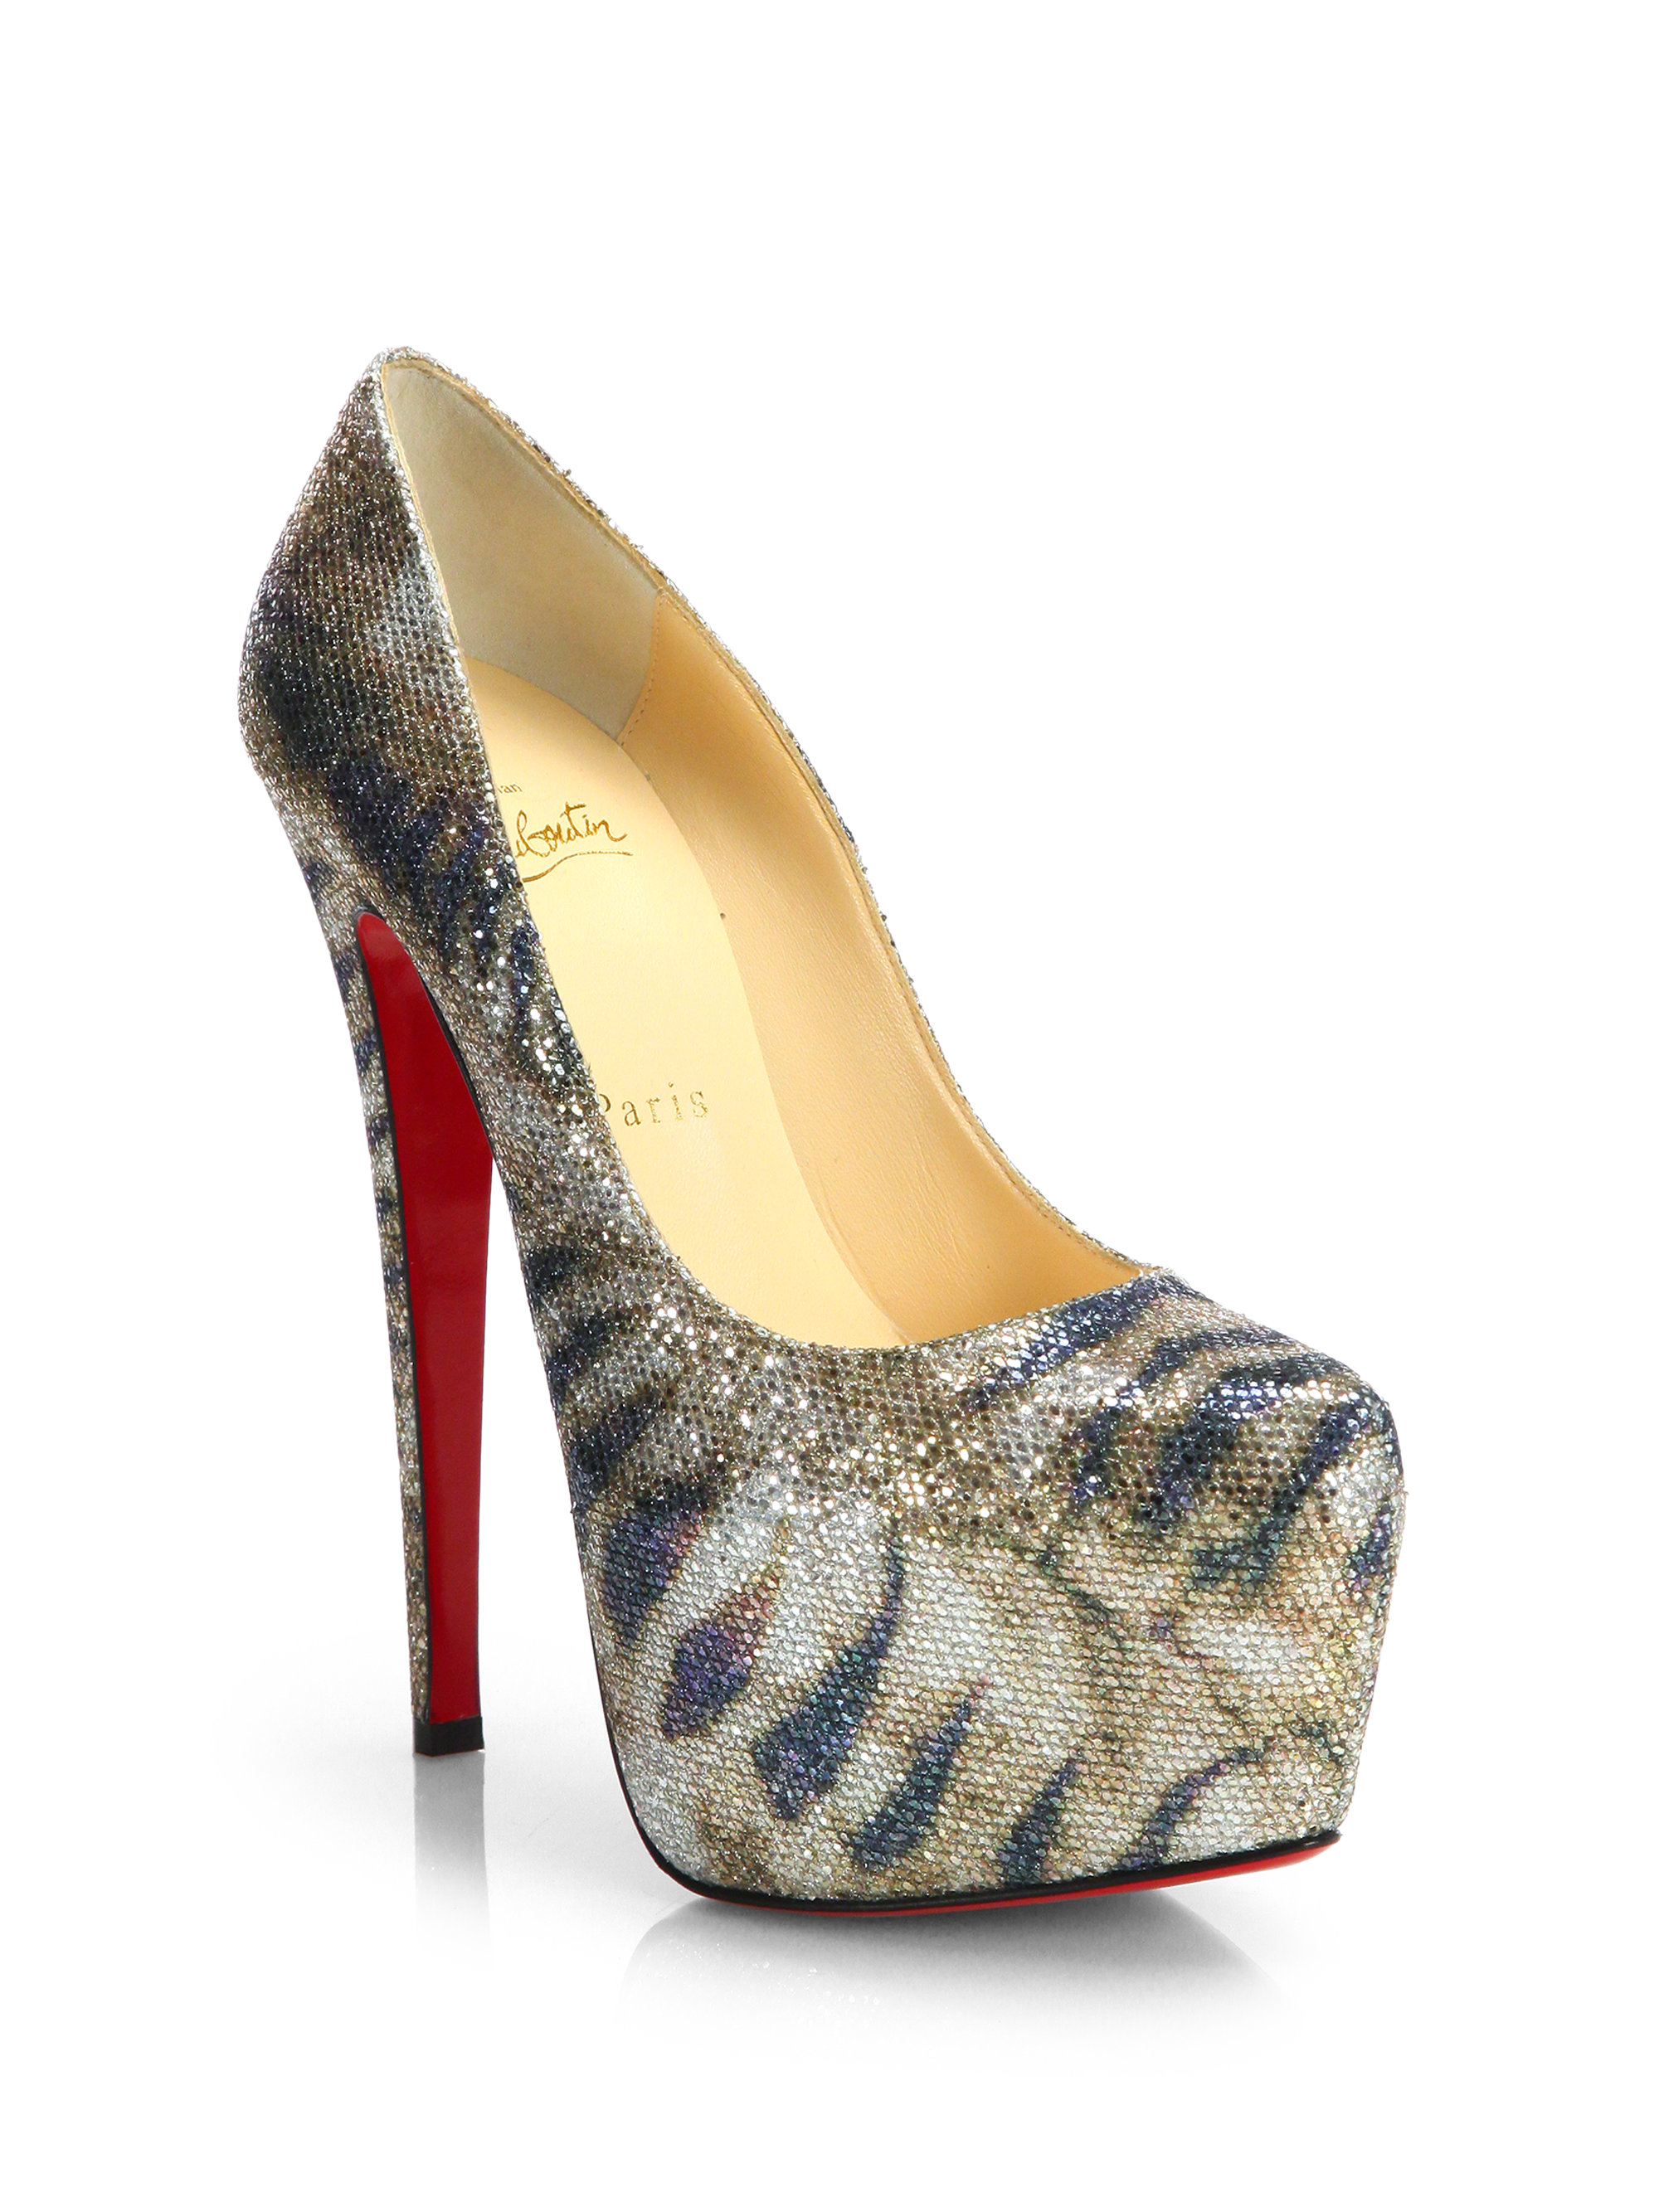 Christian louboutin Lady Peep Glitter Platform Pumps in Silver ...